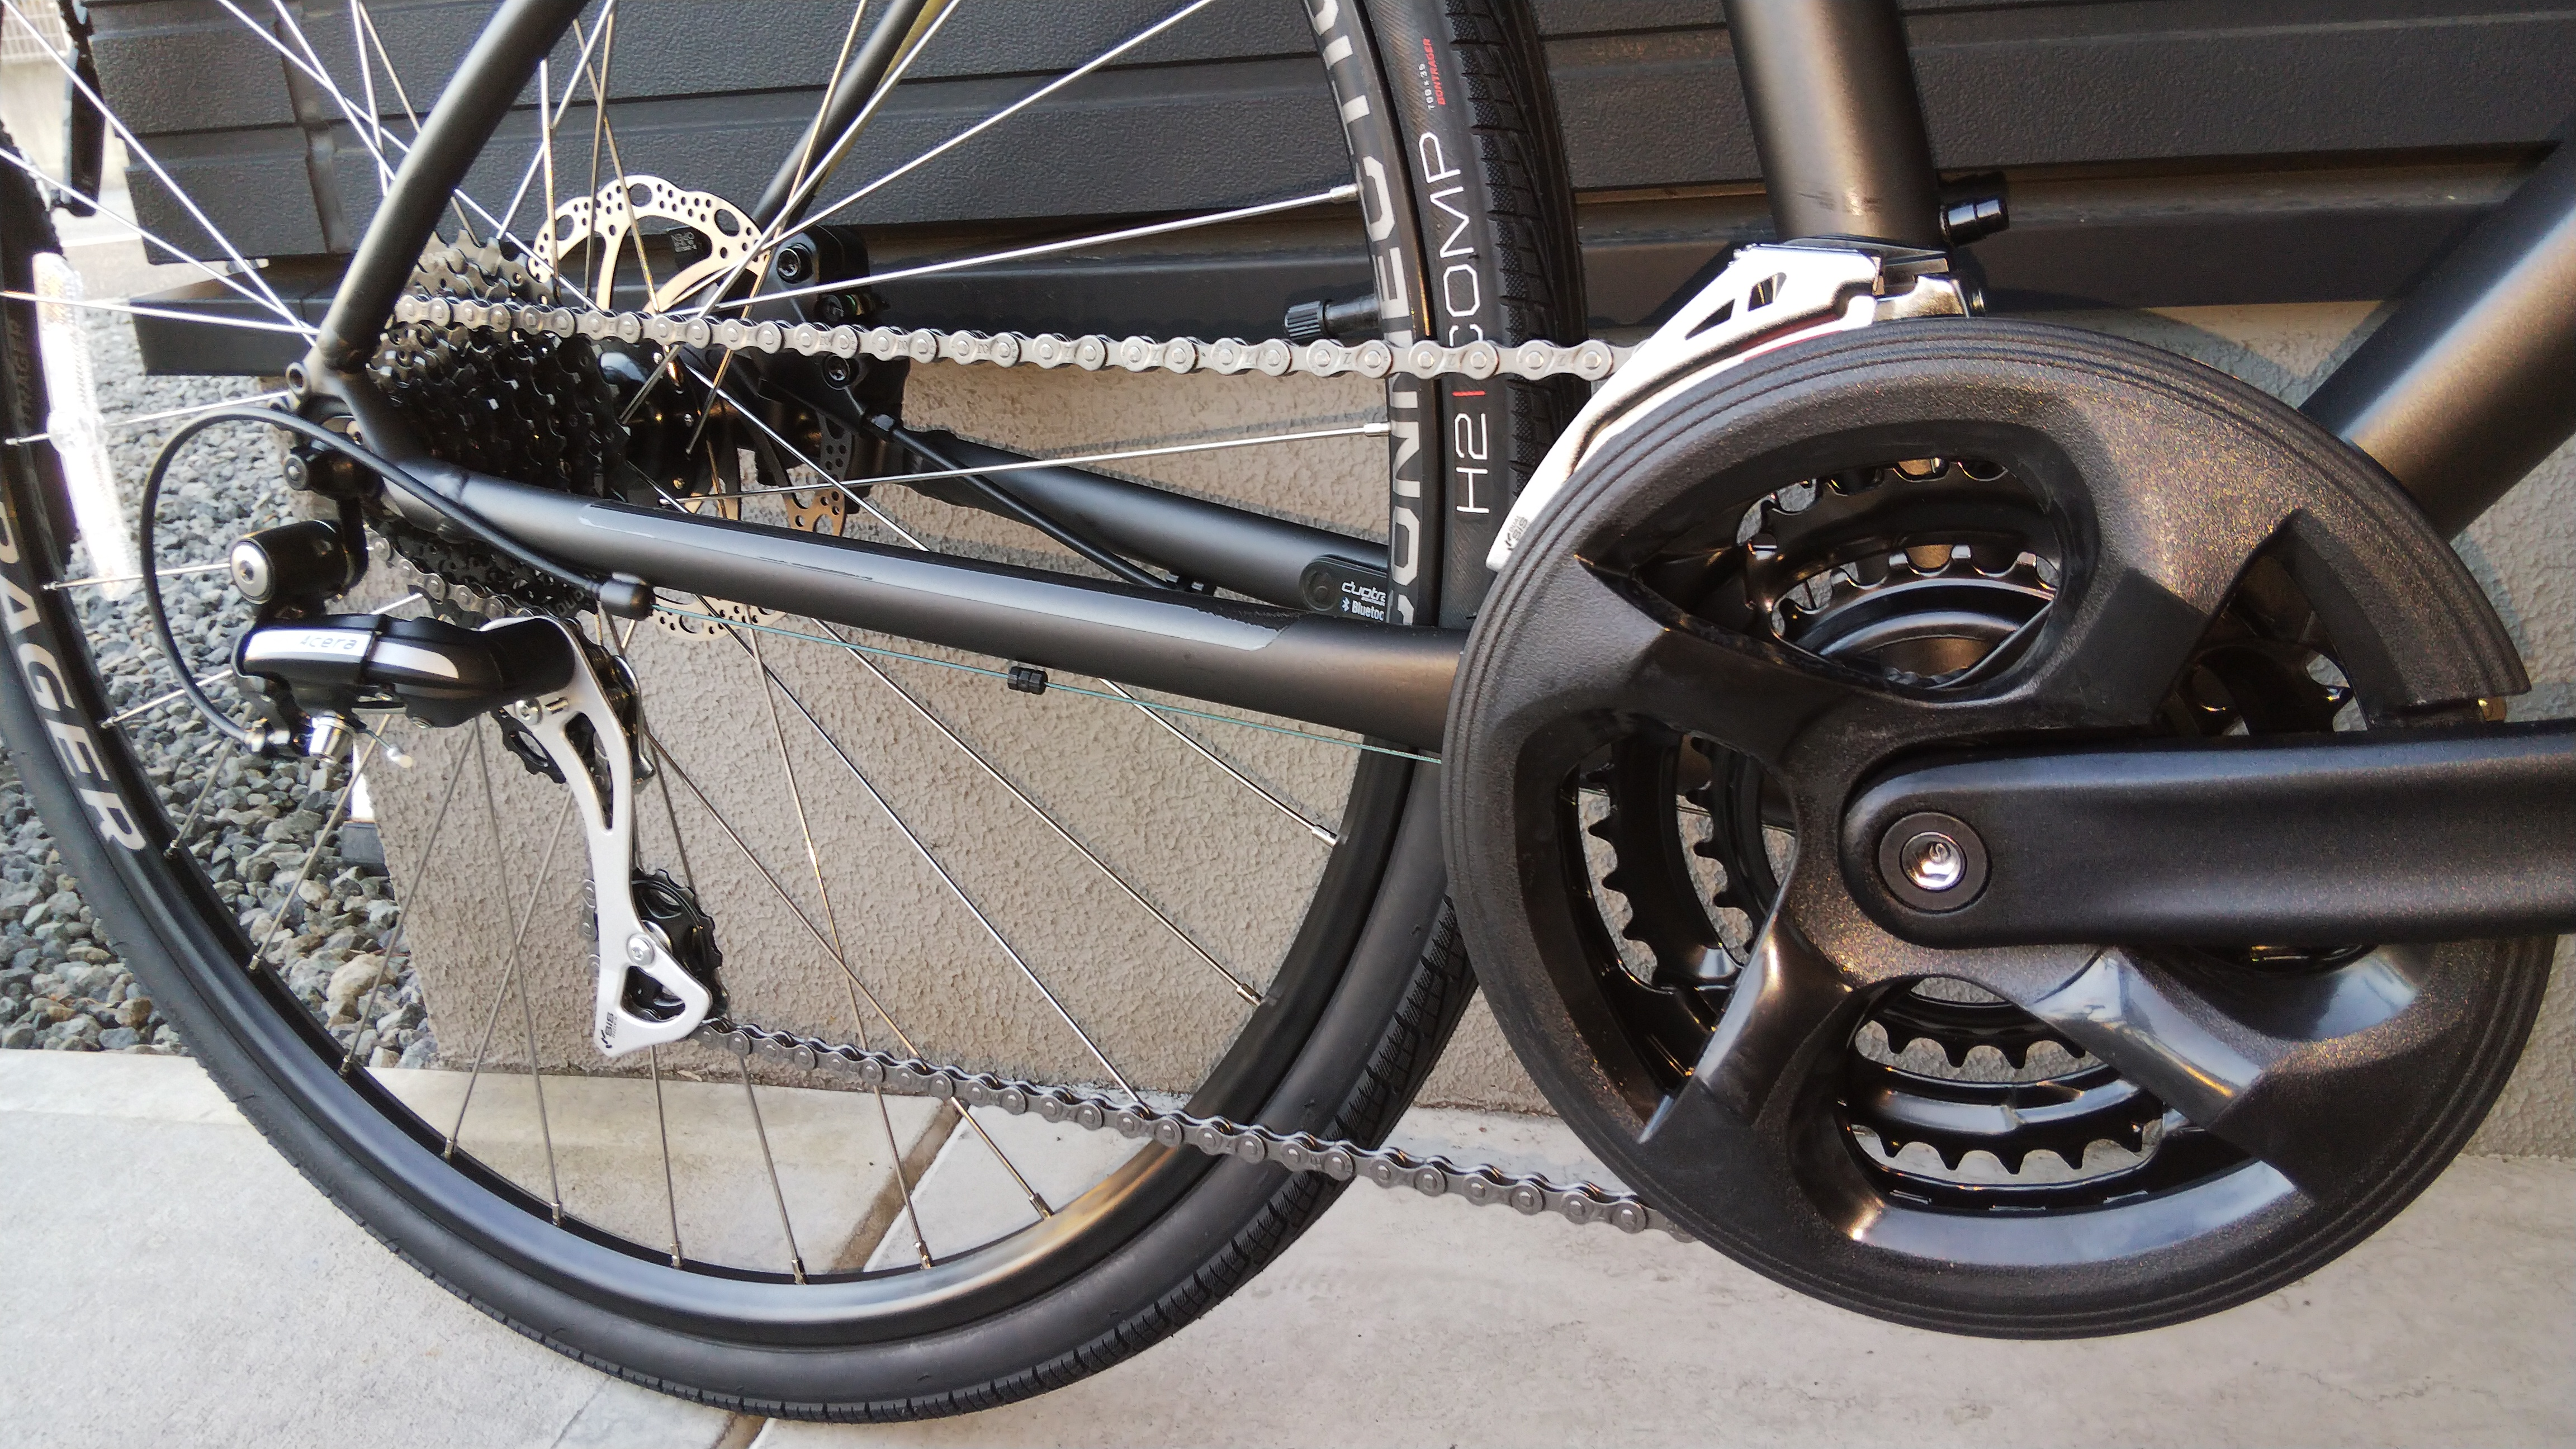 http://www.cyclomotohara.com/products/images/DSC_2359.JPG